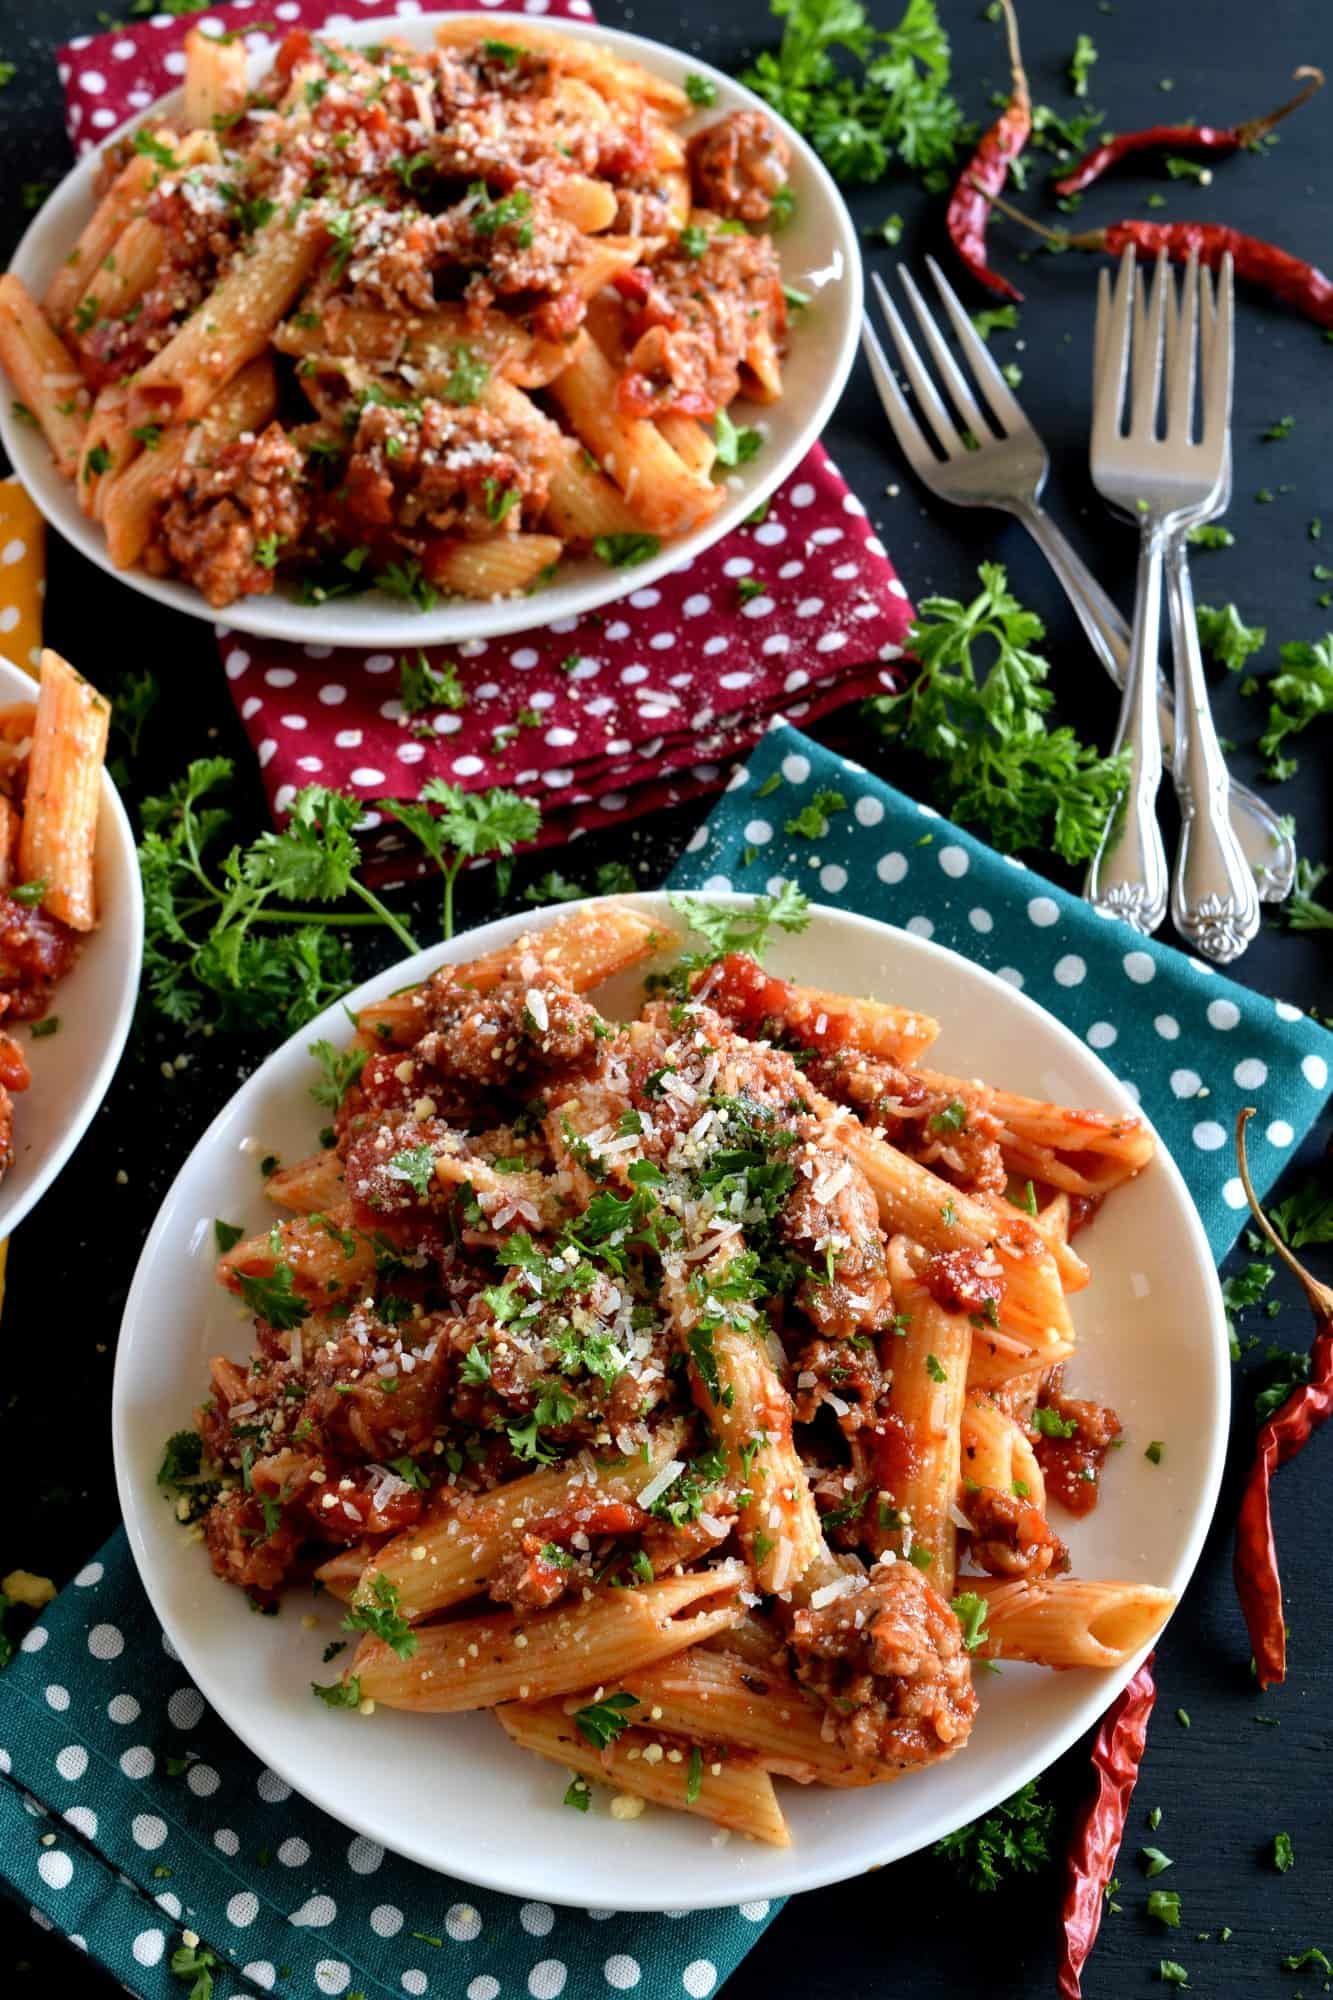 Spicy Italian Sausage Penne Pasta